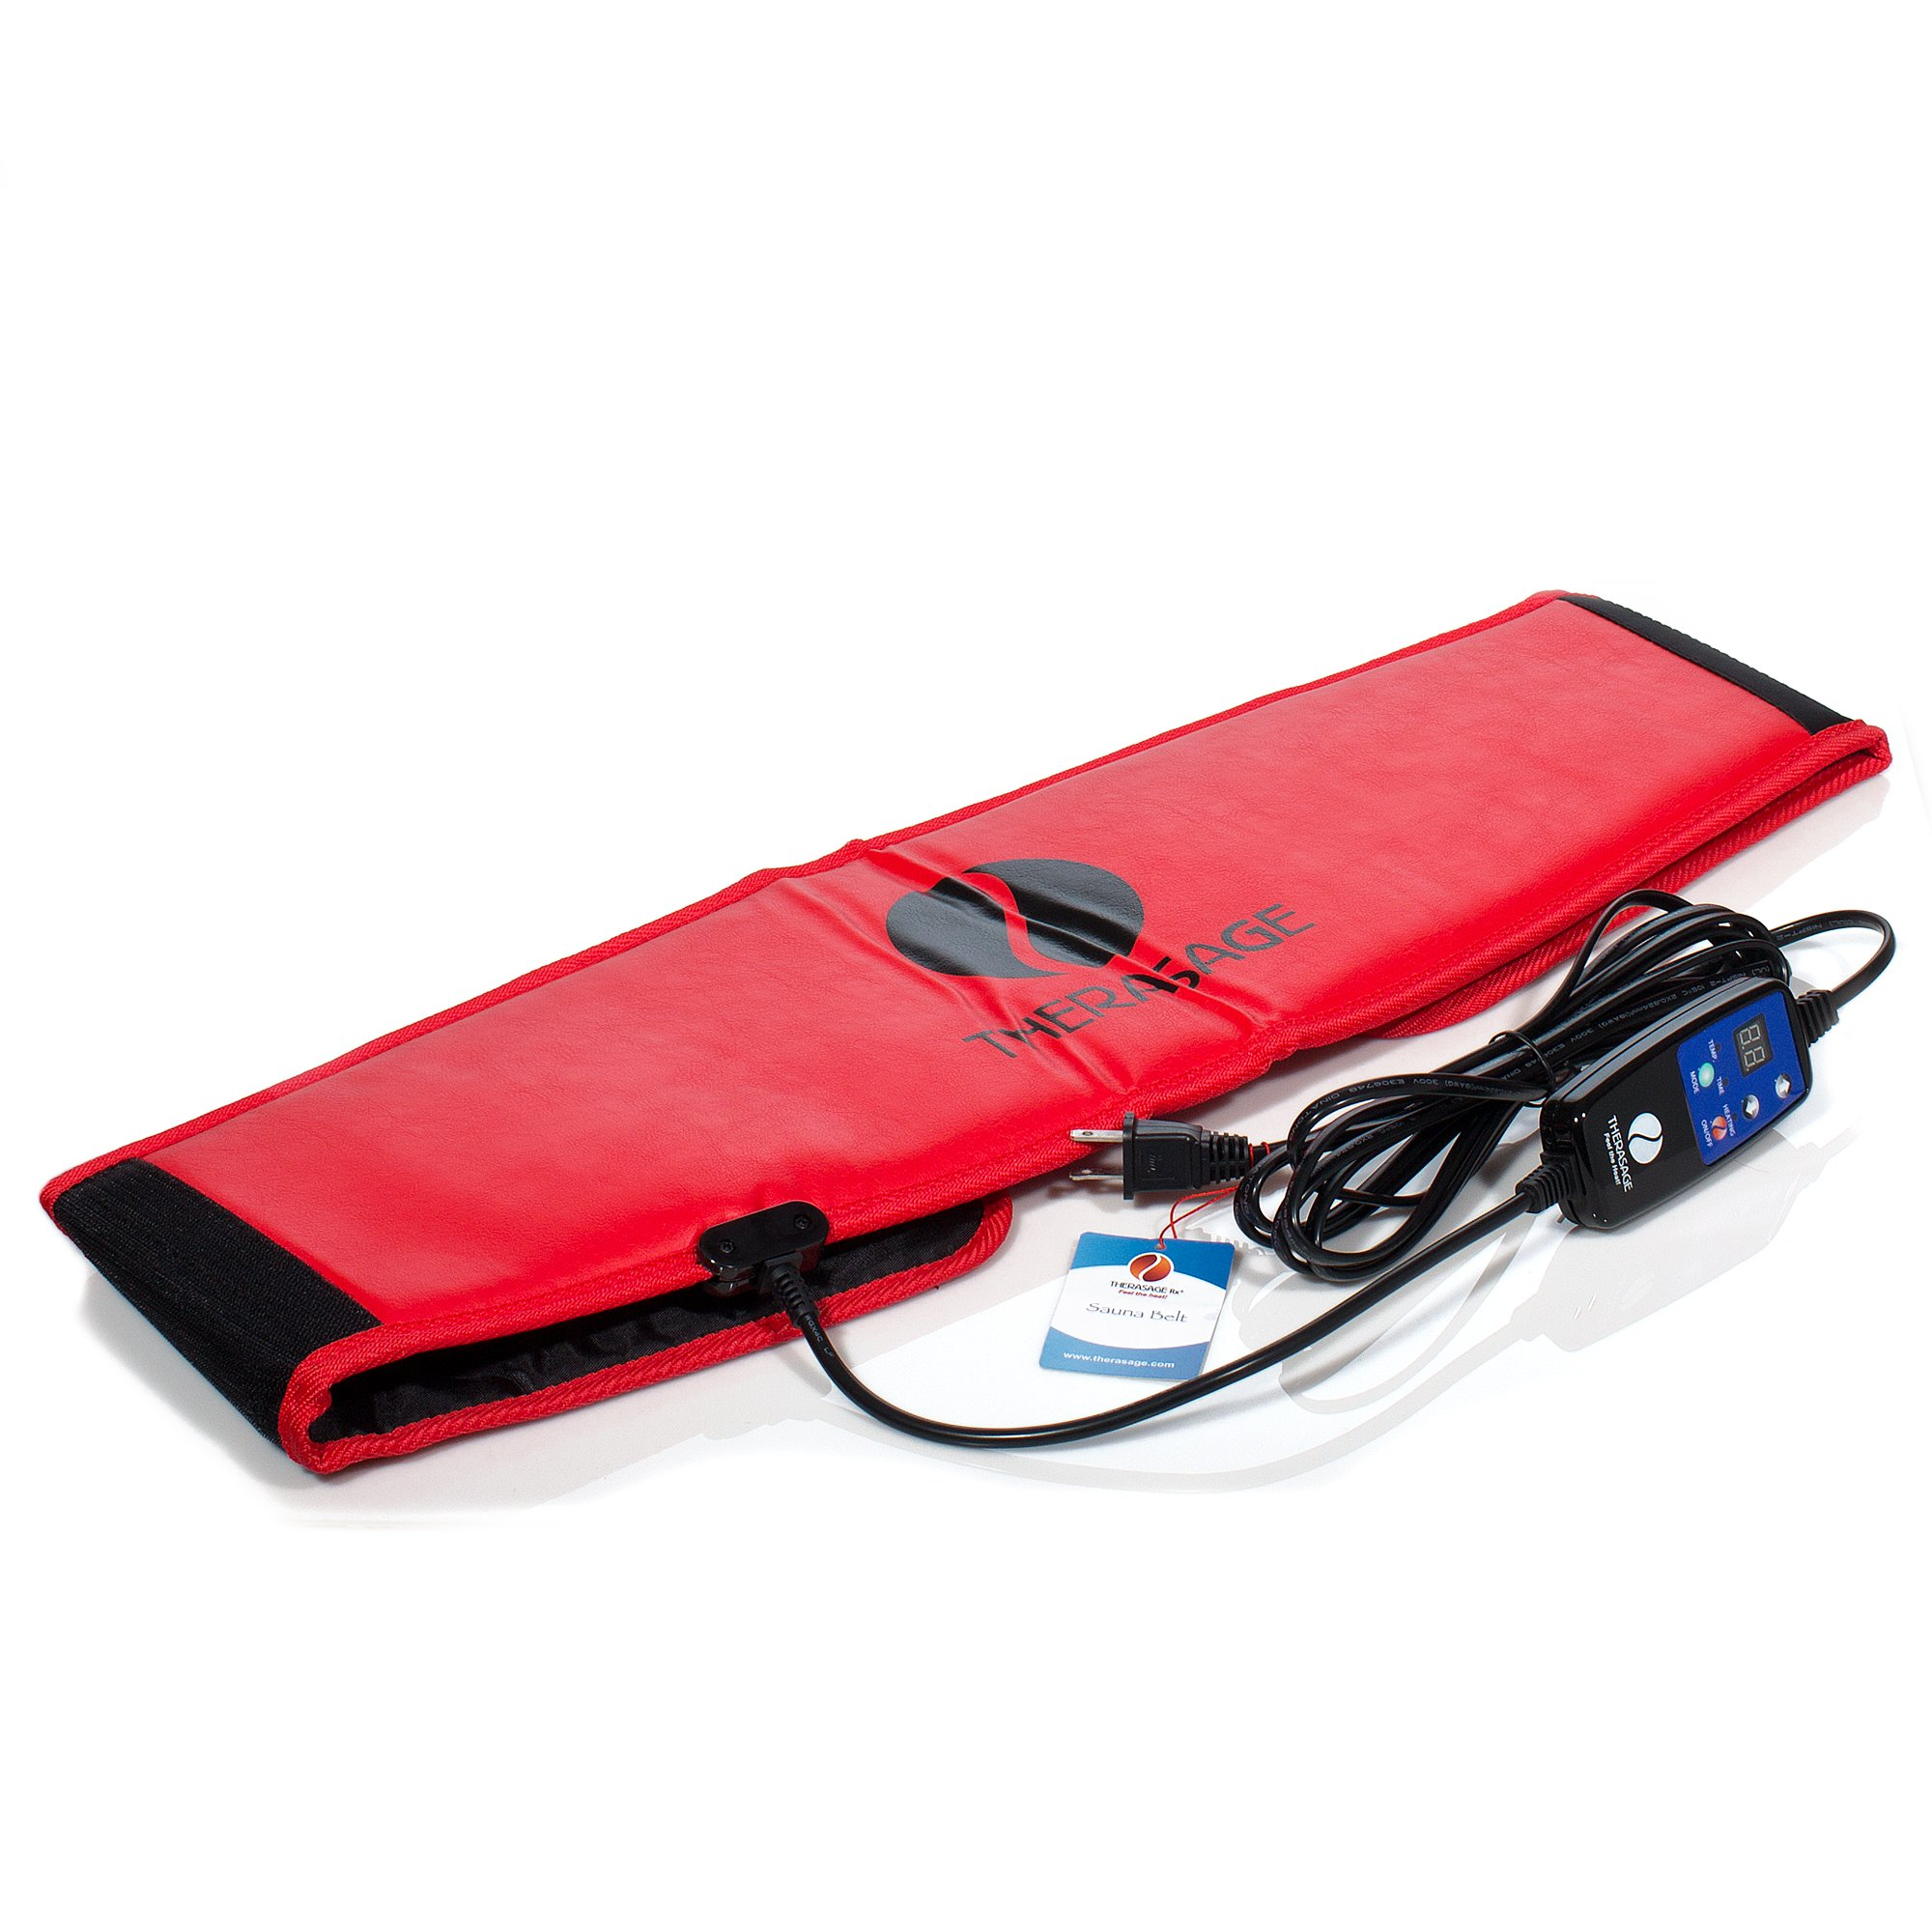 Therasage Far Infrared Muscle and Joint Tension Relief Portable Sauna Belt - Red